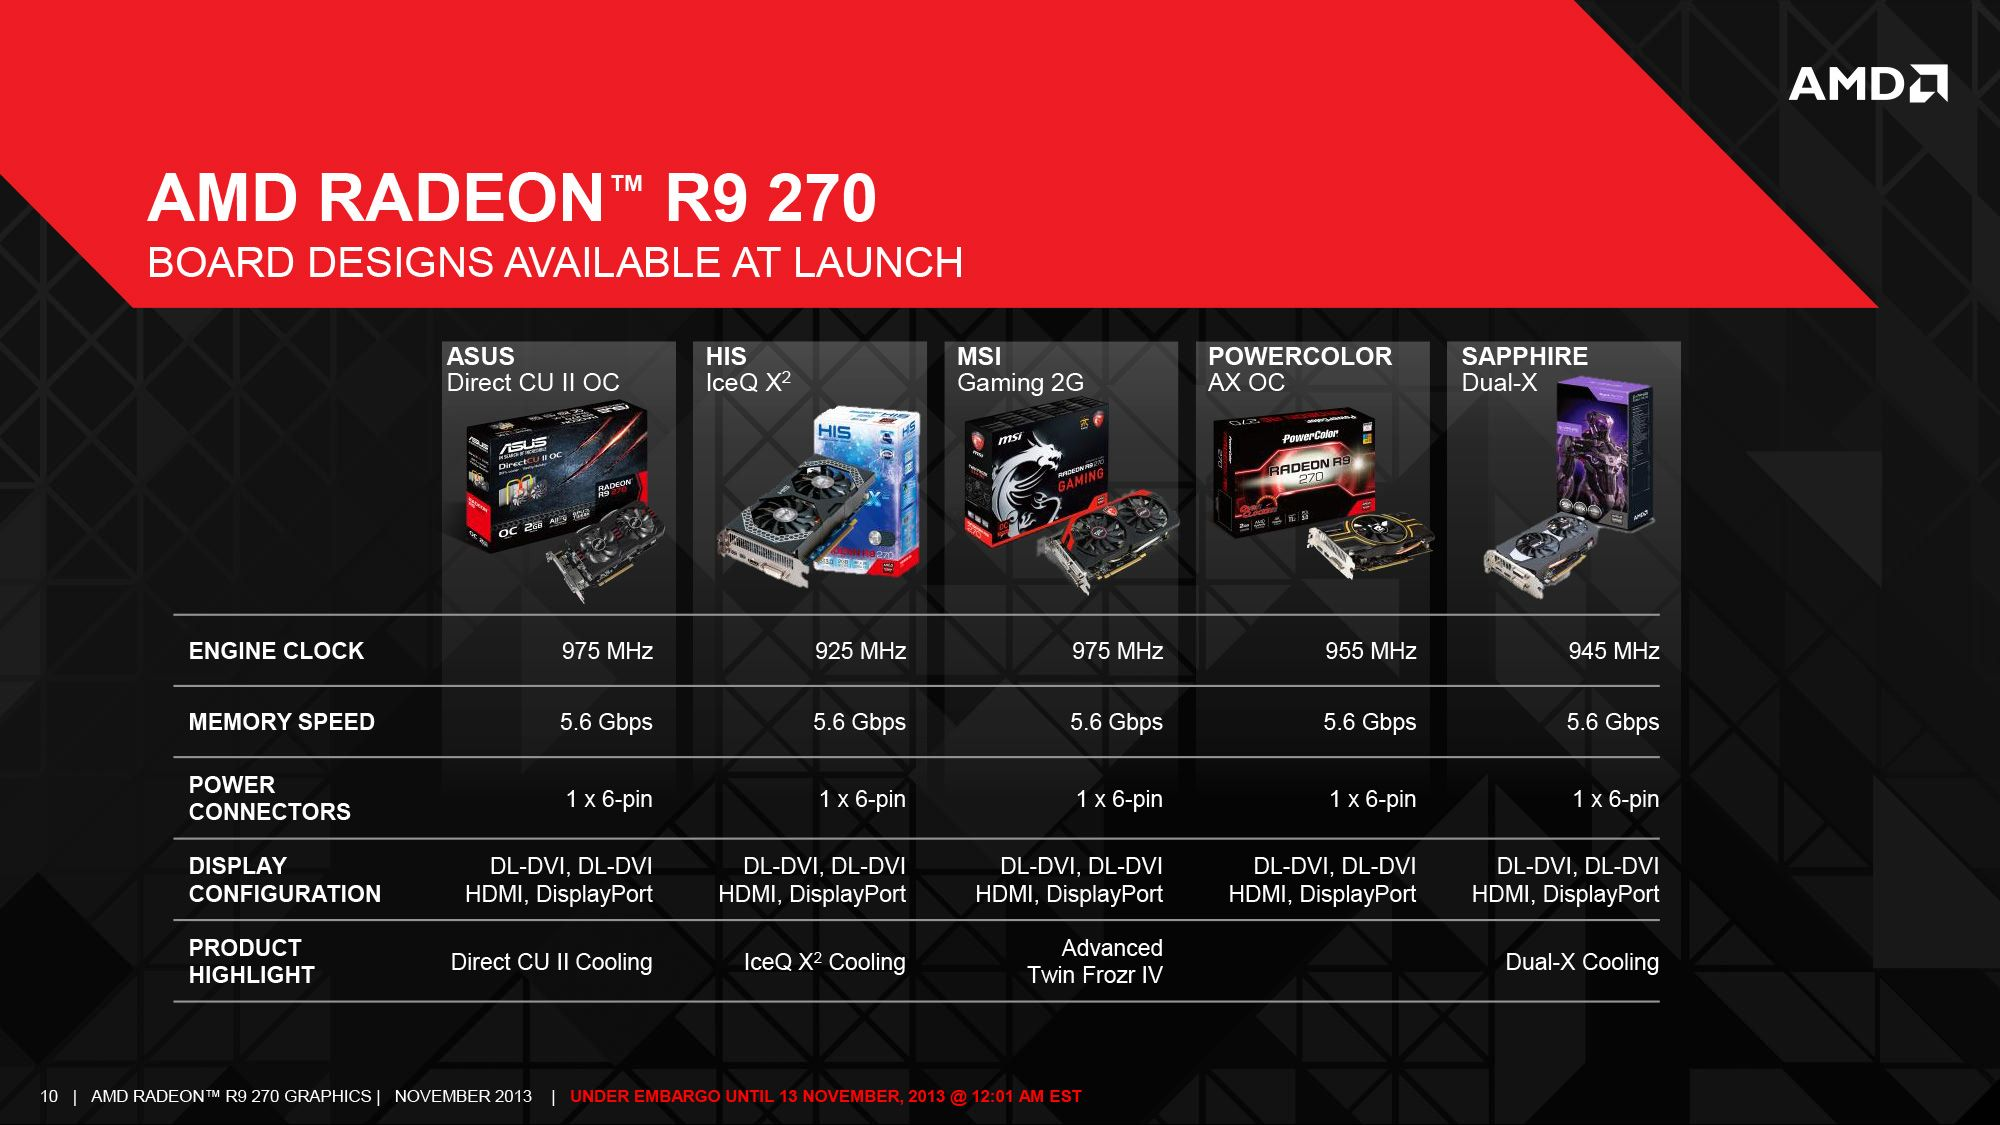 The Amd Radeon R9 270x R9 270 Review The Radeon 200 Series Was A Different Kind Of Launch From Amd Than Anything We Ve Seen From Th Amd Nvidia Previous Year